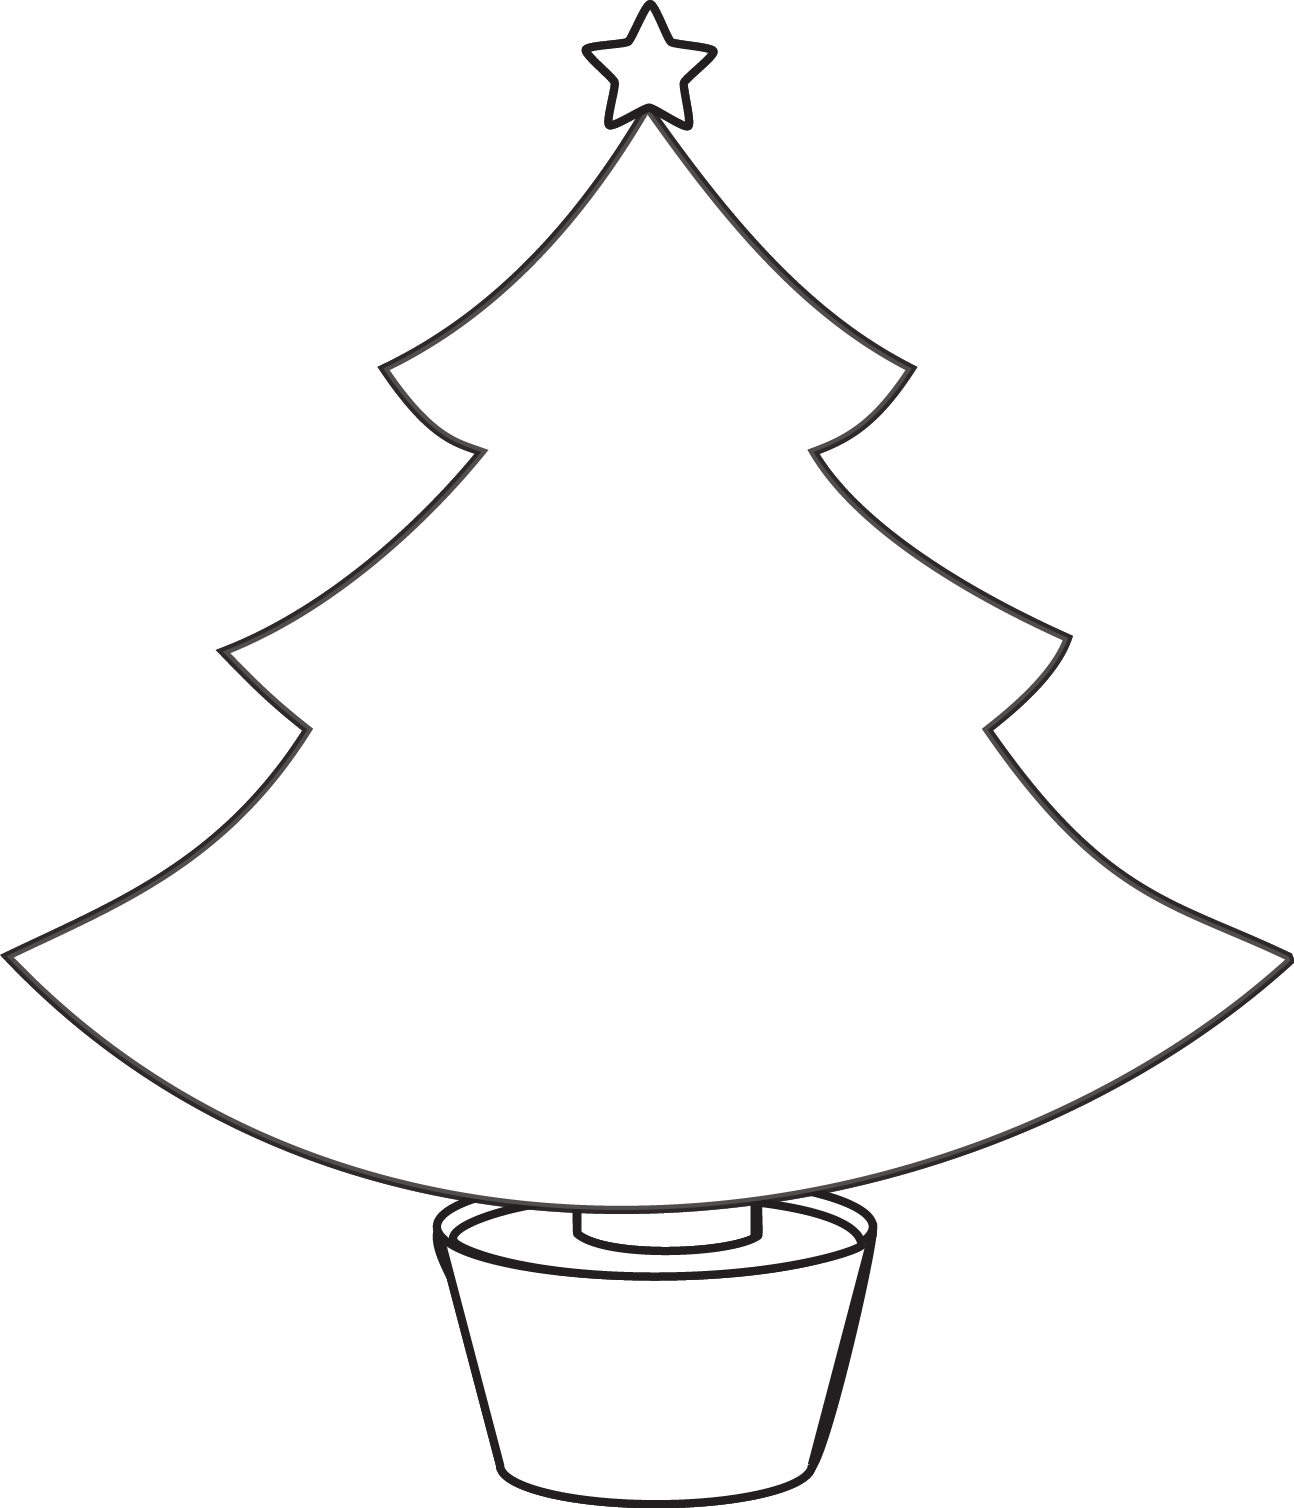 1294x1508 Christmas Ornaments Clipart Drawn